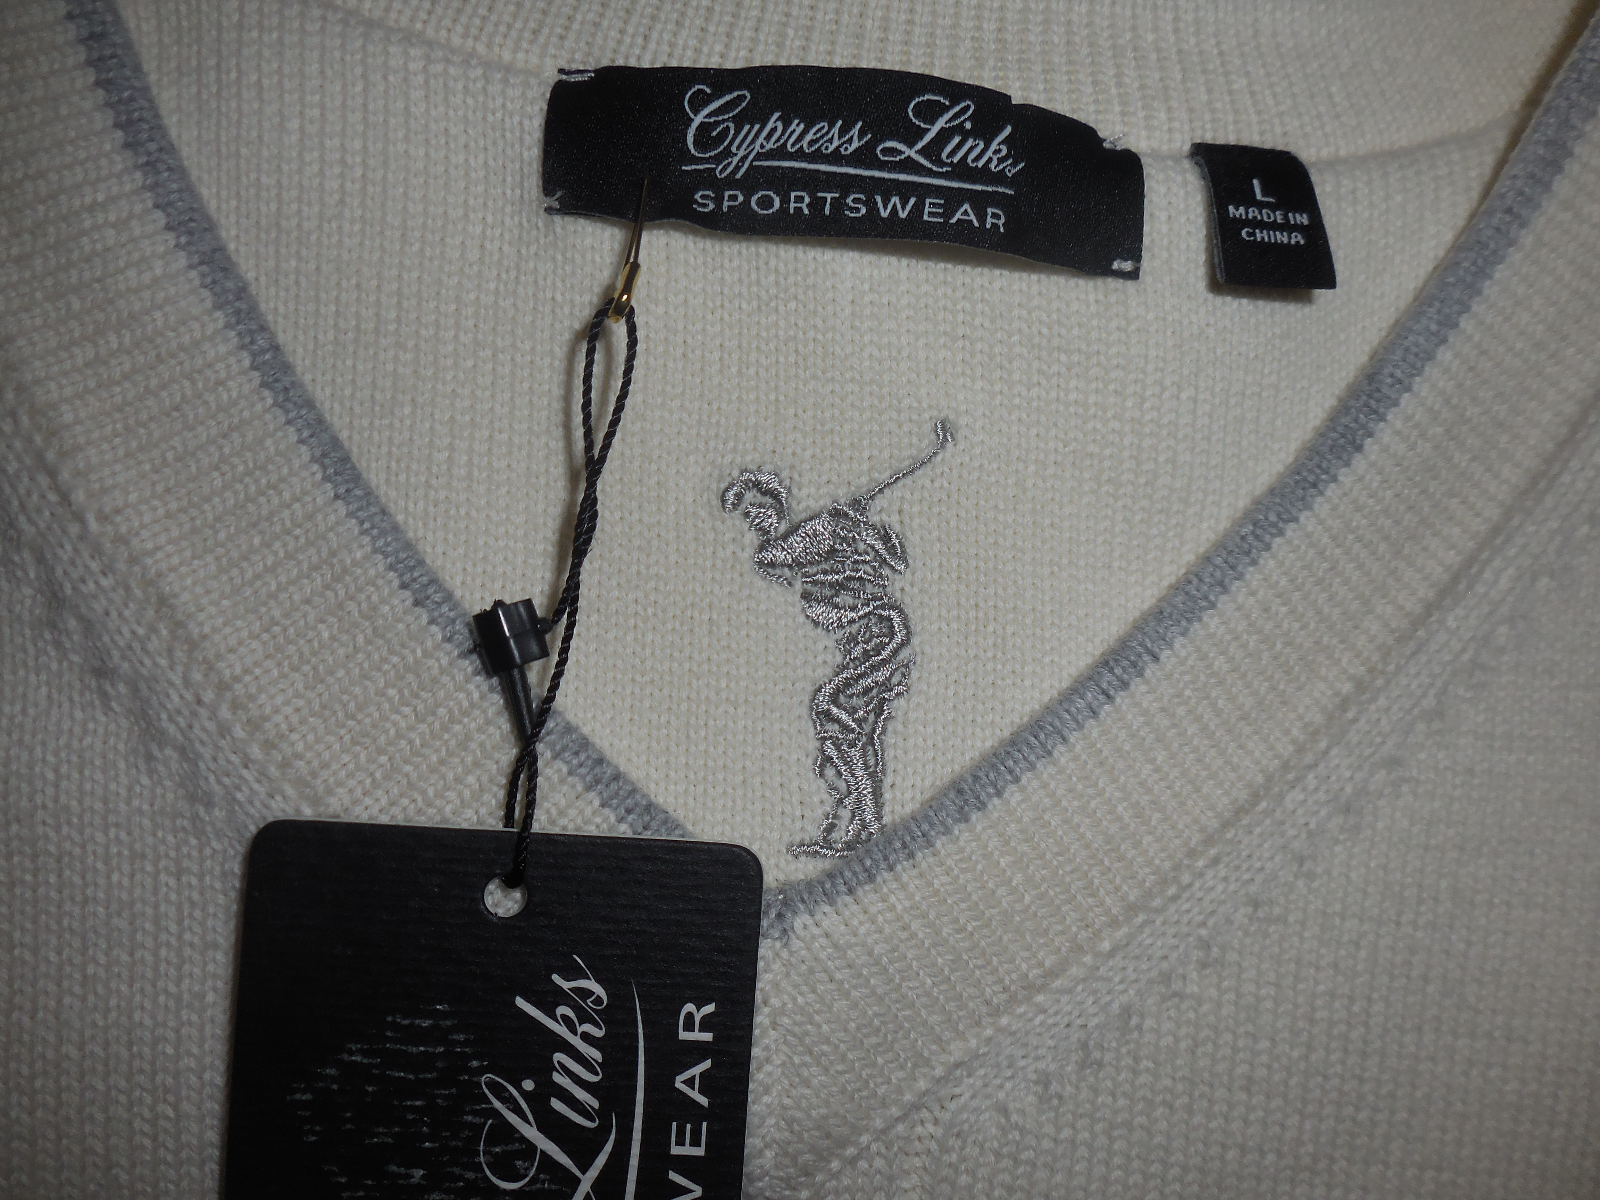 CYPRESS LINKS Cable Knit Cream Sweater Vest Large Golf Attire Sportswear LARGE image 3